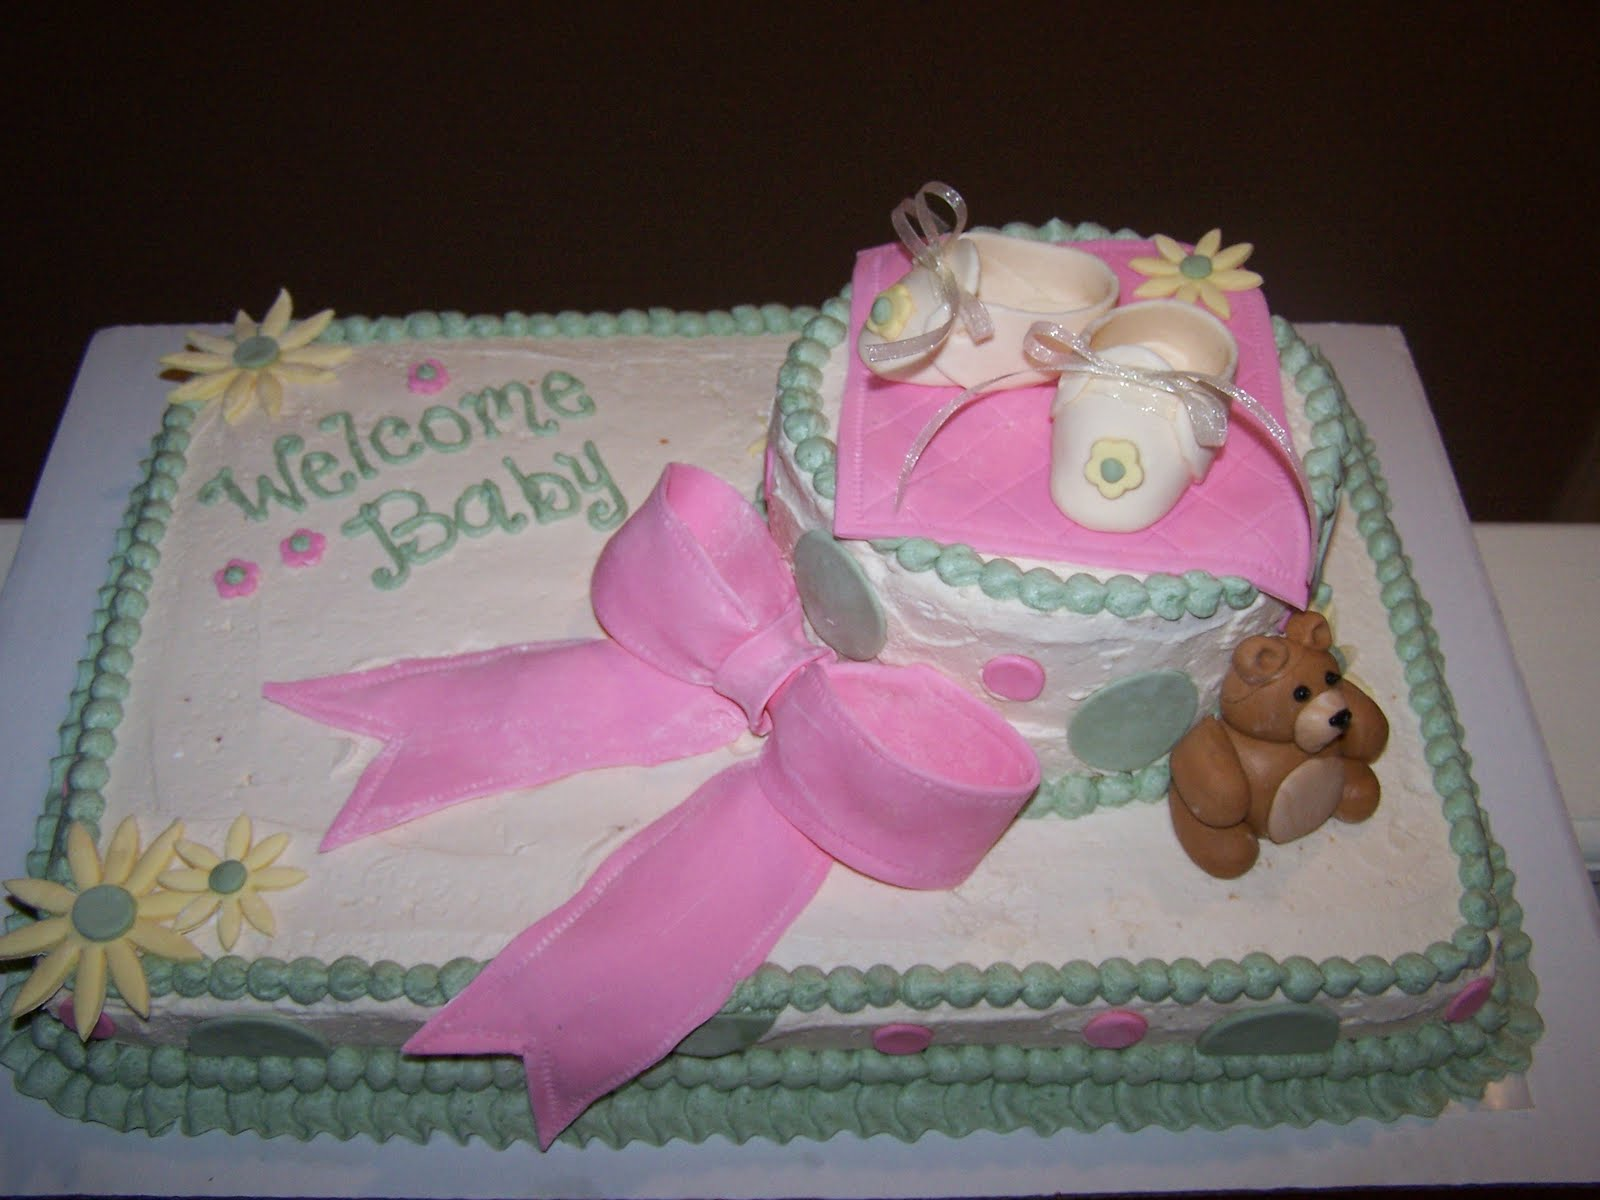 Sheet Cake Decorating Ideas Baby Shower : Living Room Decorating Ideas: Baby Shower Sheet Cake ...